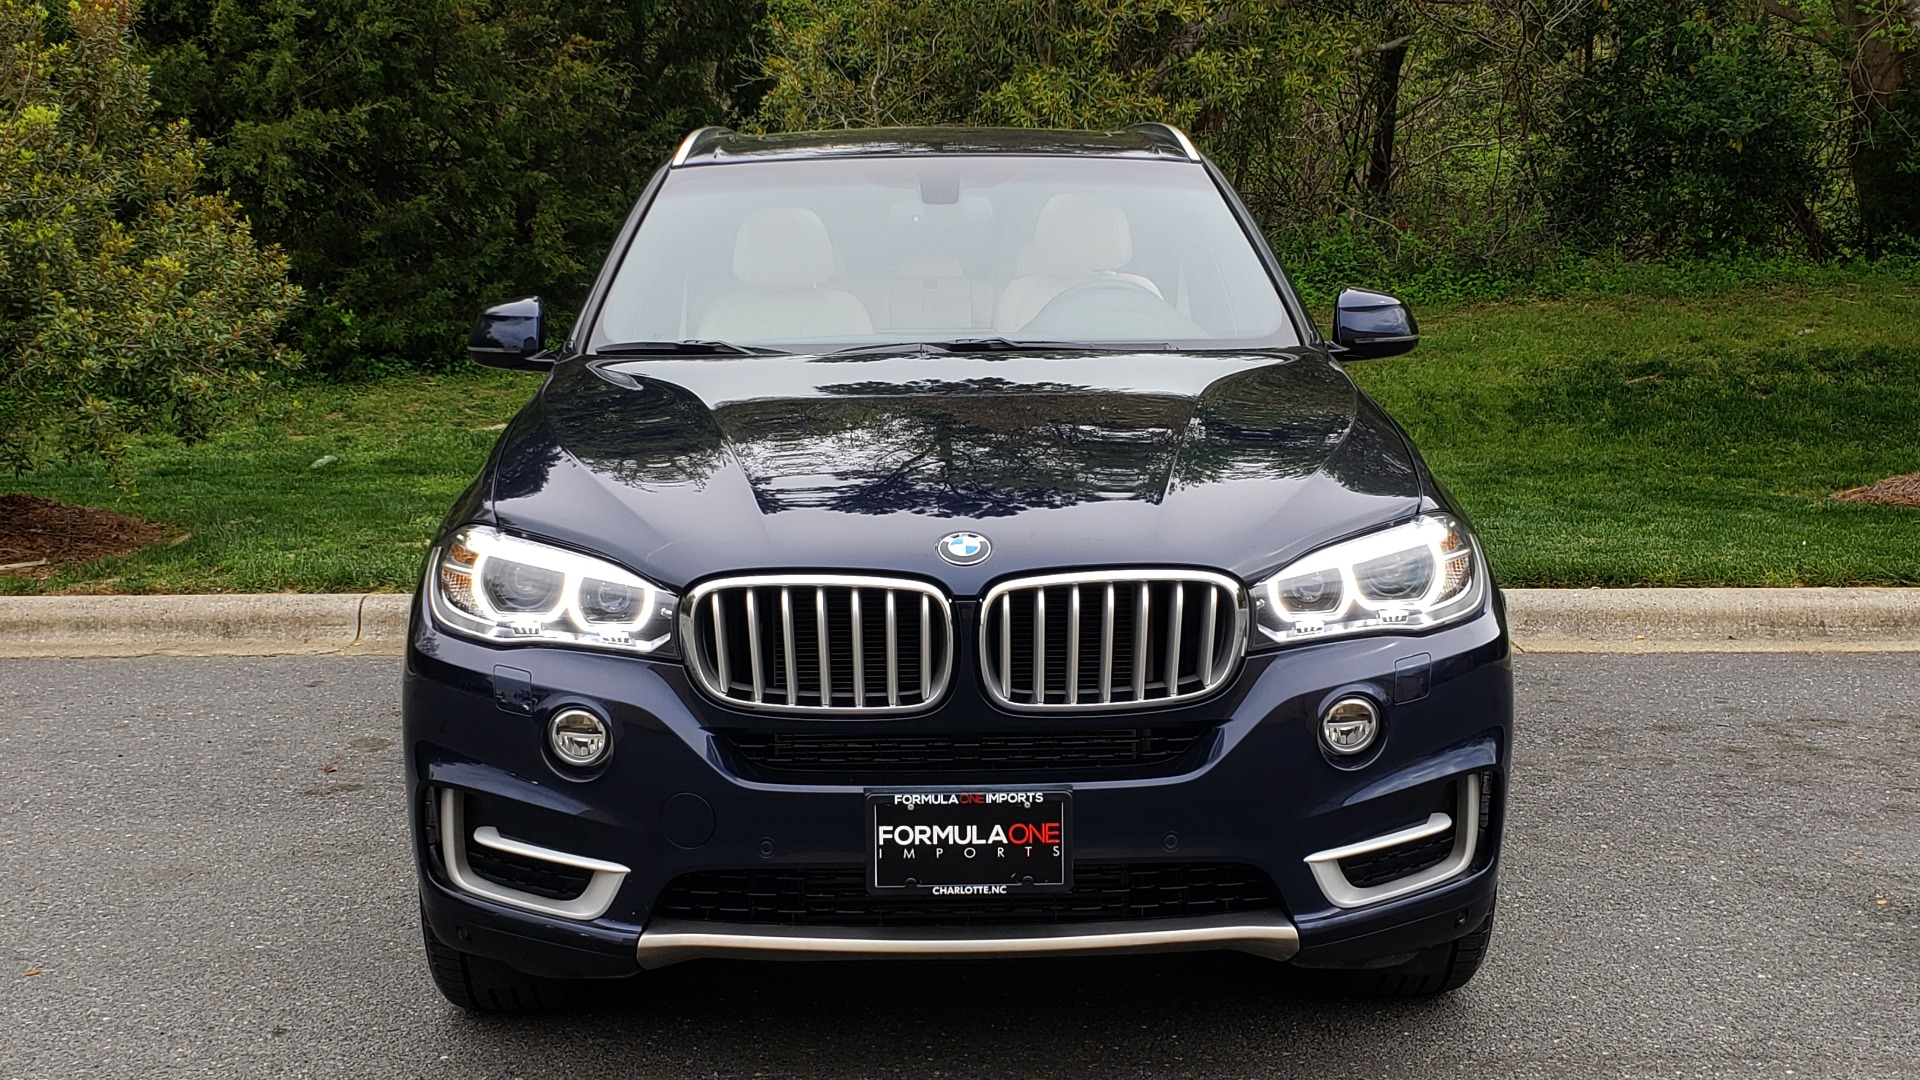 Used 2017 BMW X5 XDRIVE35I PREMIUM / NAV / SUNROOF/ CLD WTHR / HARMAN/KARDON / REARVIEW for sale $30,595 at Formula Imports in Charlotte NC 28227 20